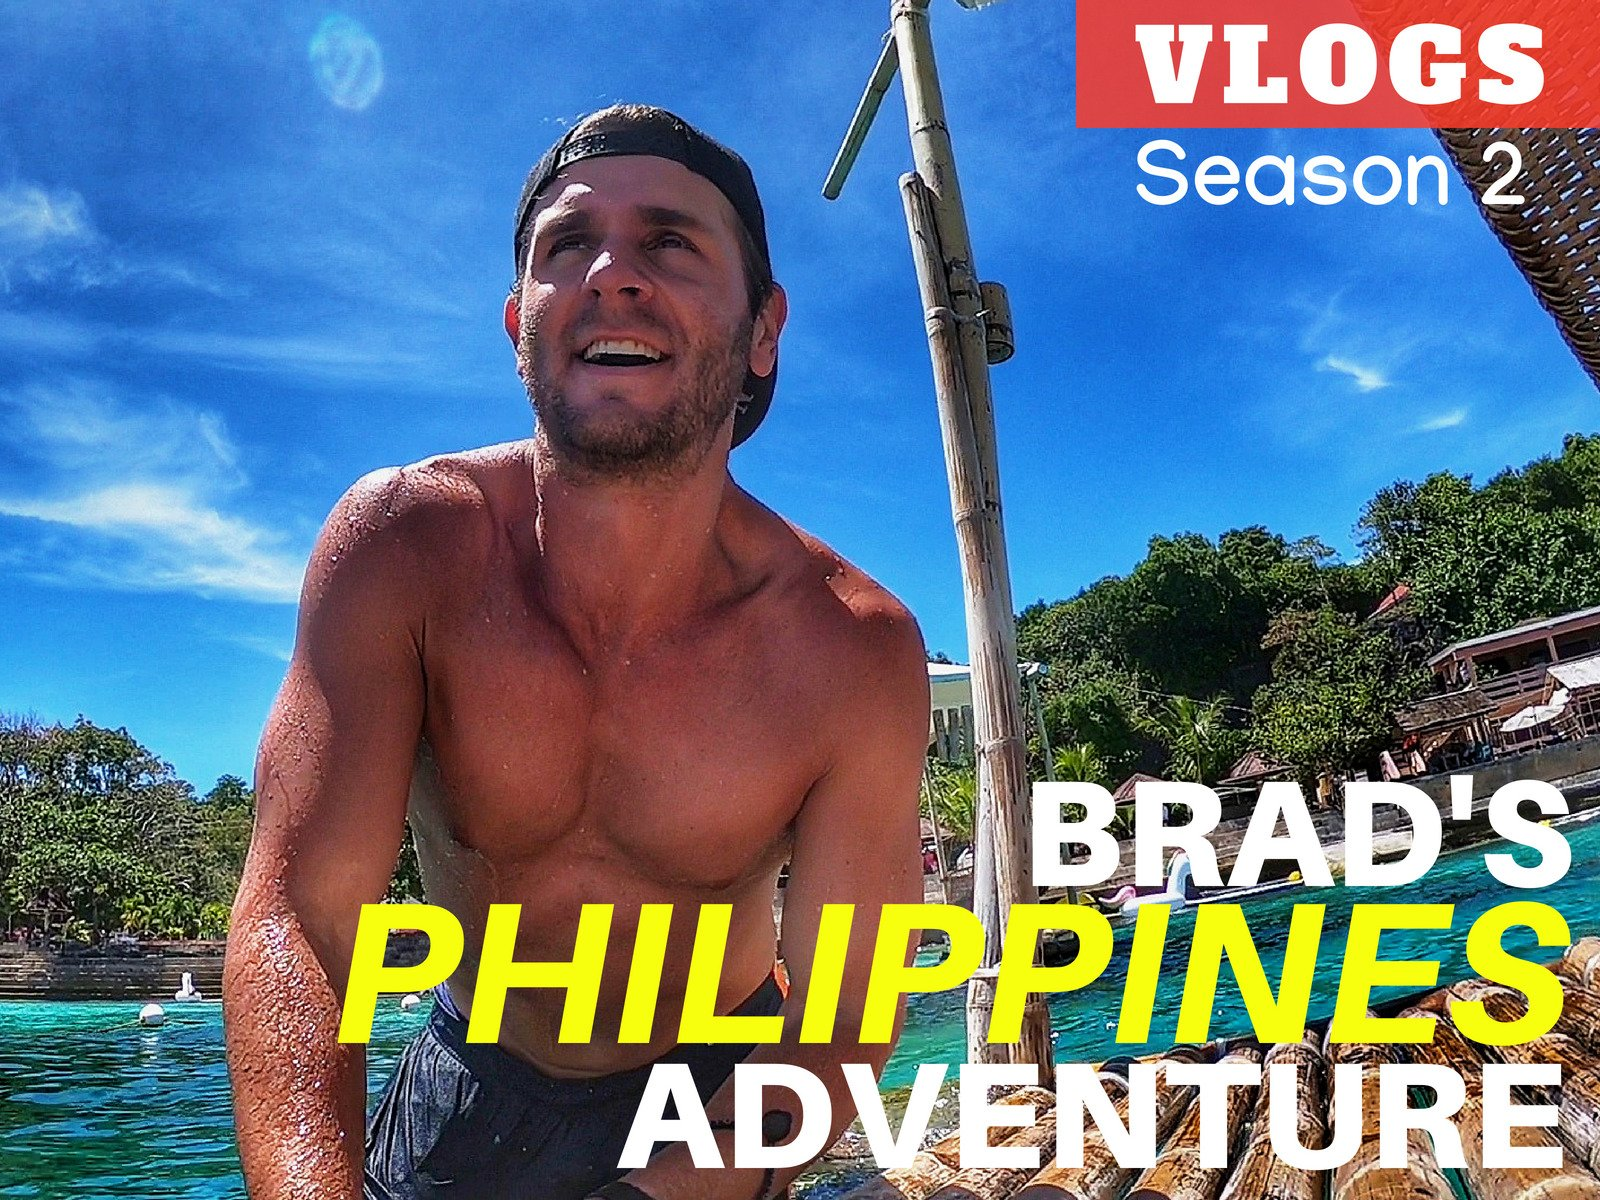 Brad's Philippines Adventure Vlogs - Season 2